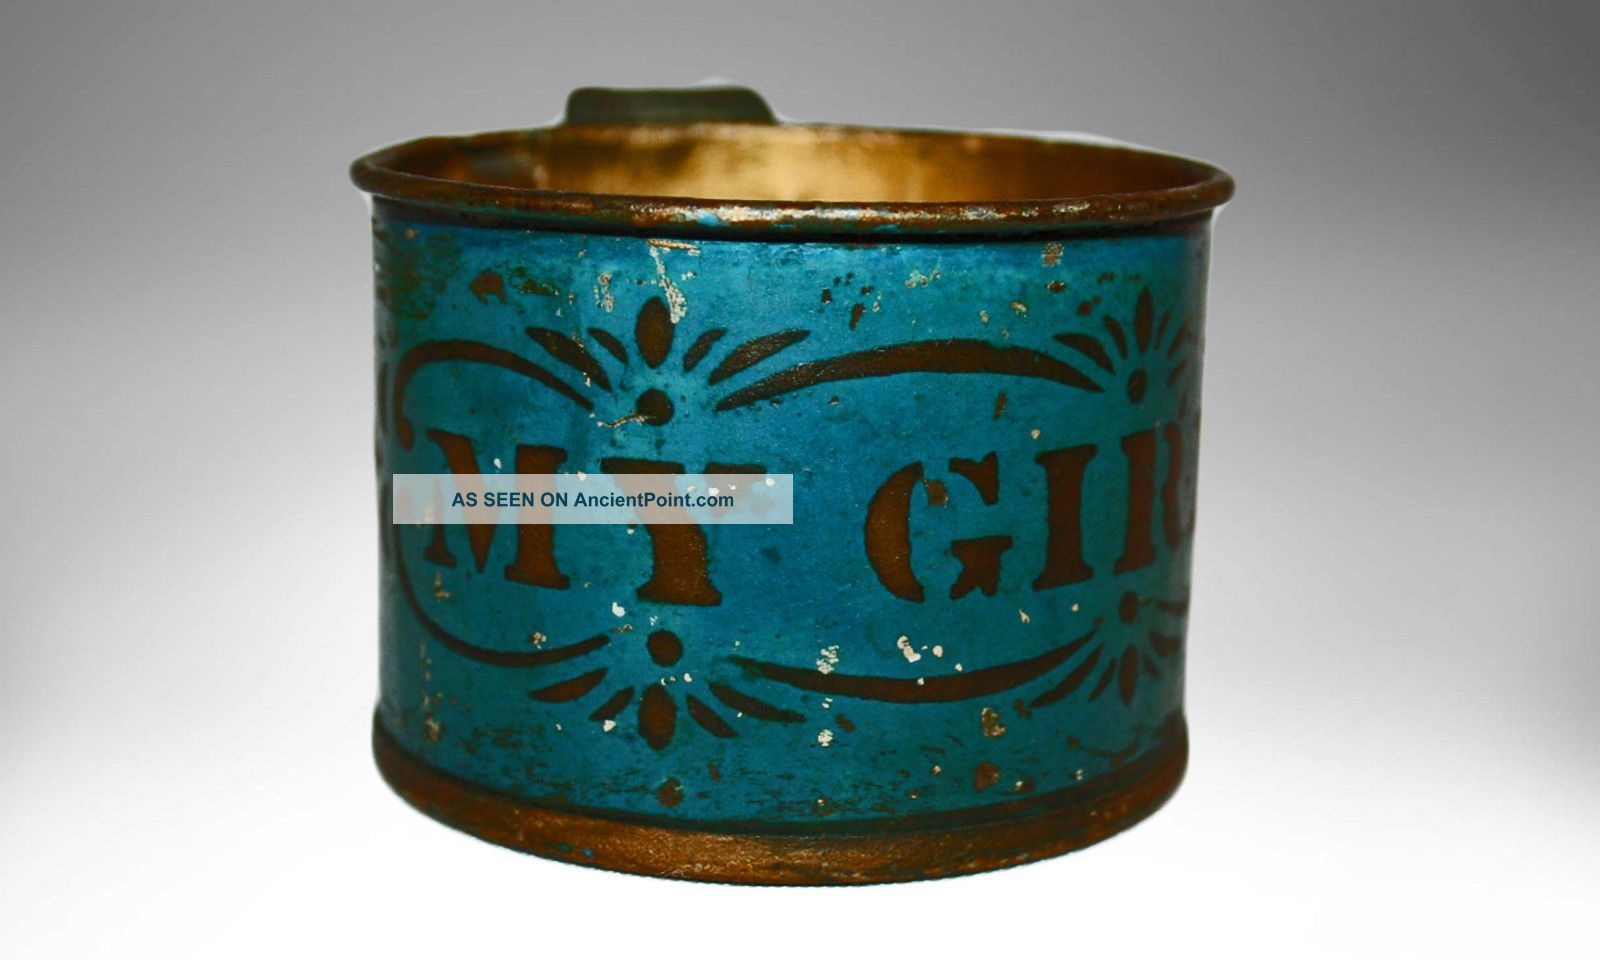 Authentic Antique Tin Cup For Child Painted My Girl 19th Century Primitives photo